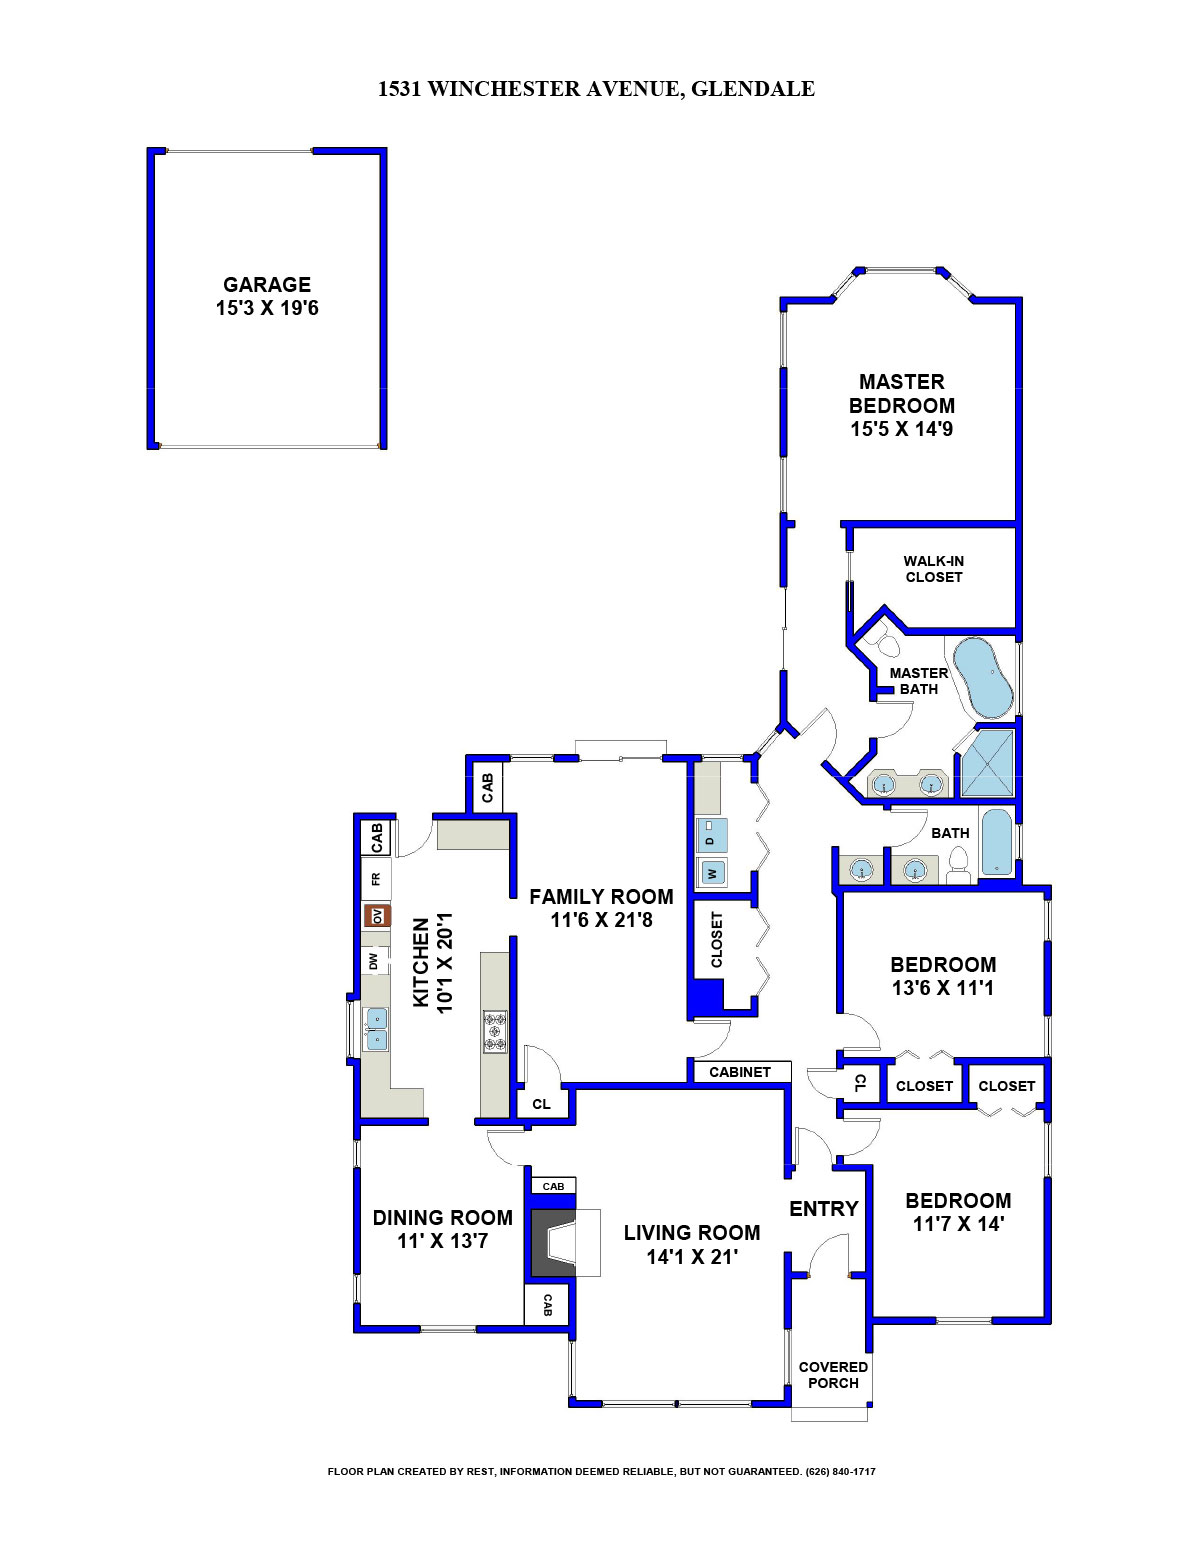 1531 Winchester Ave Floorplan